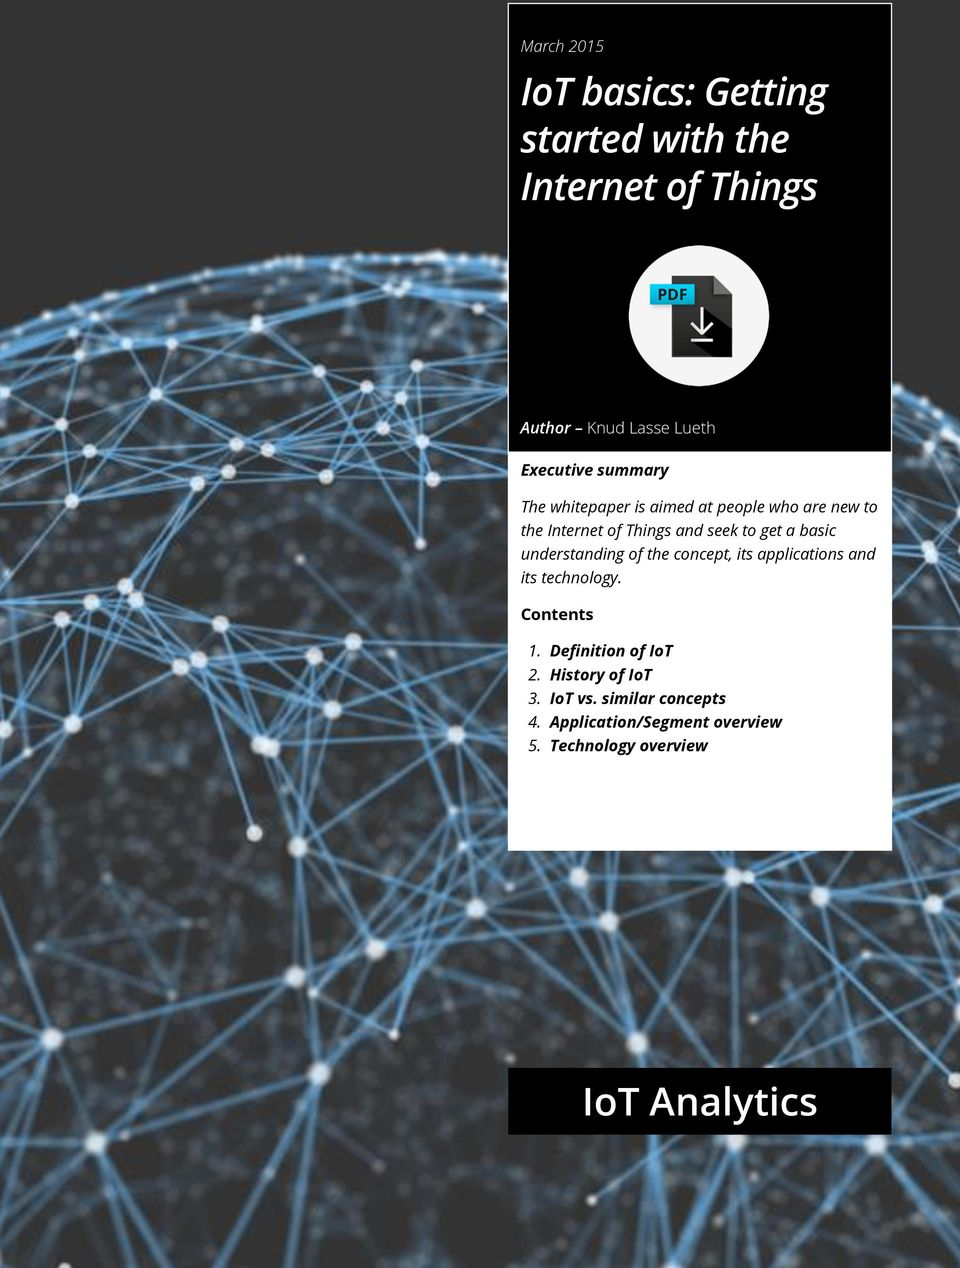 IoT basics: Getting started with the Internet of Things - PDF